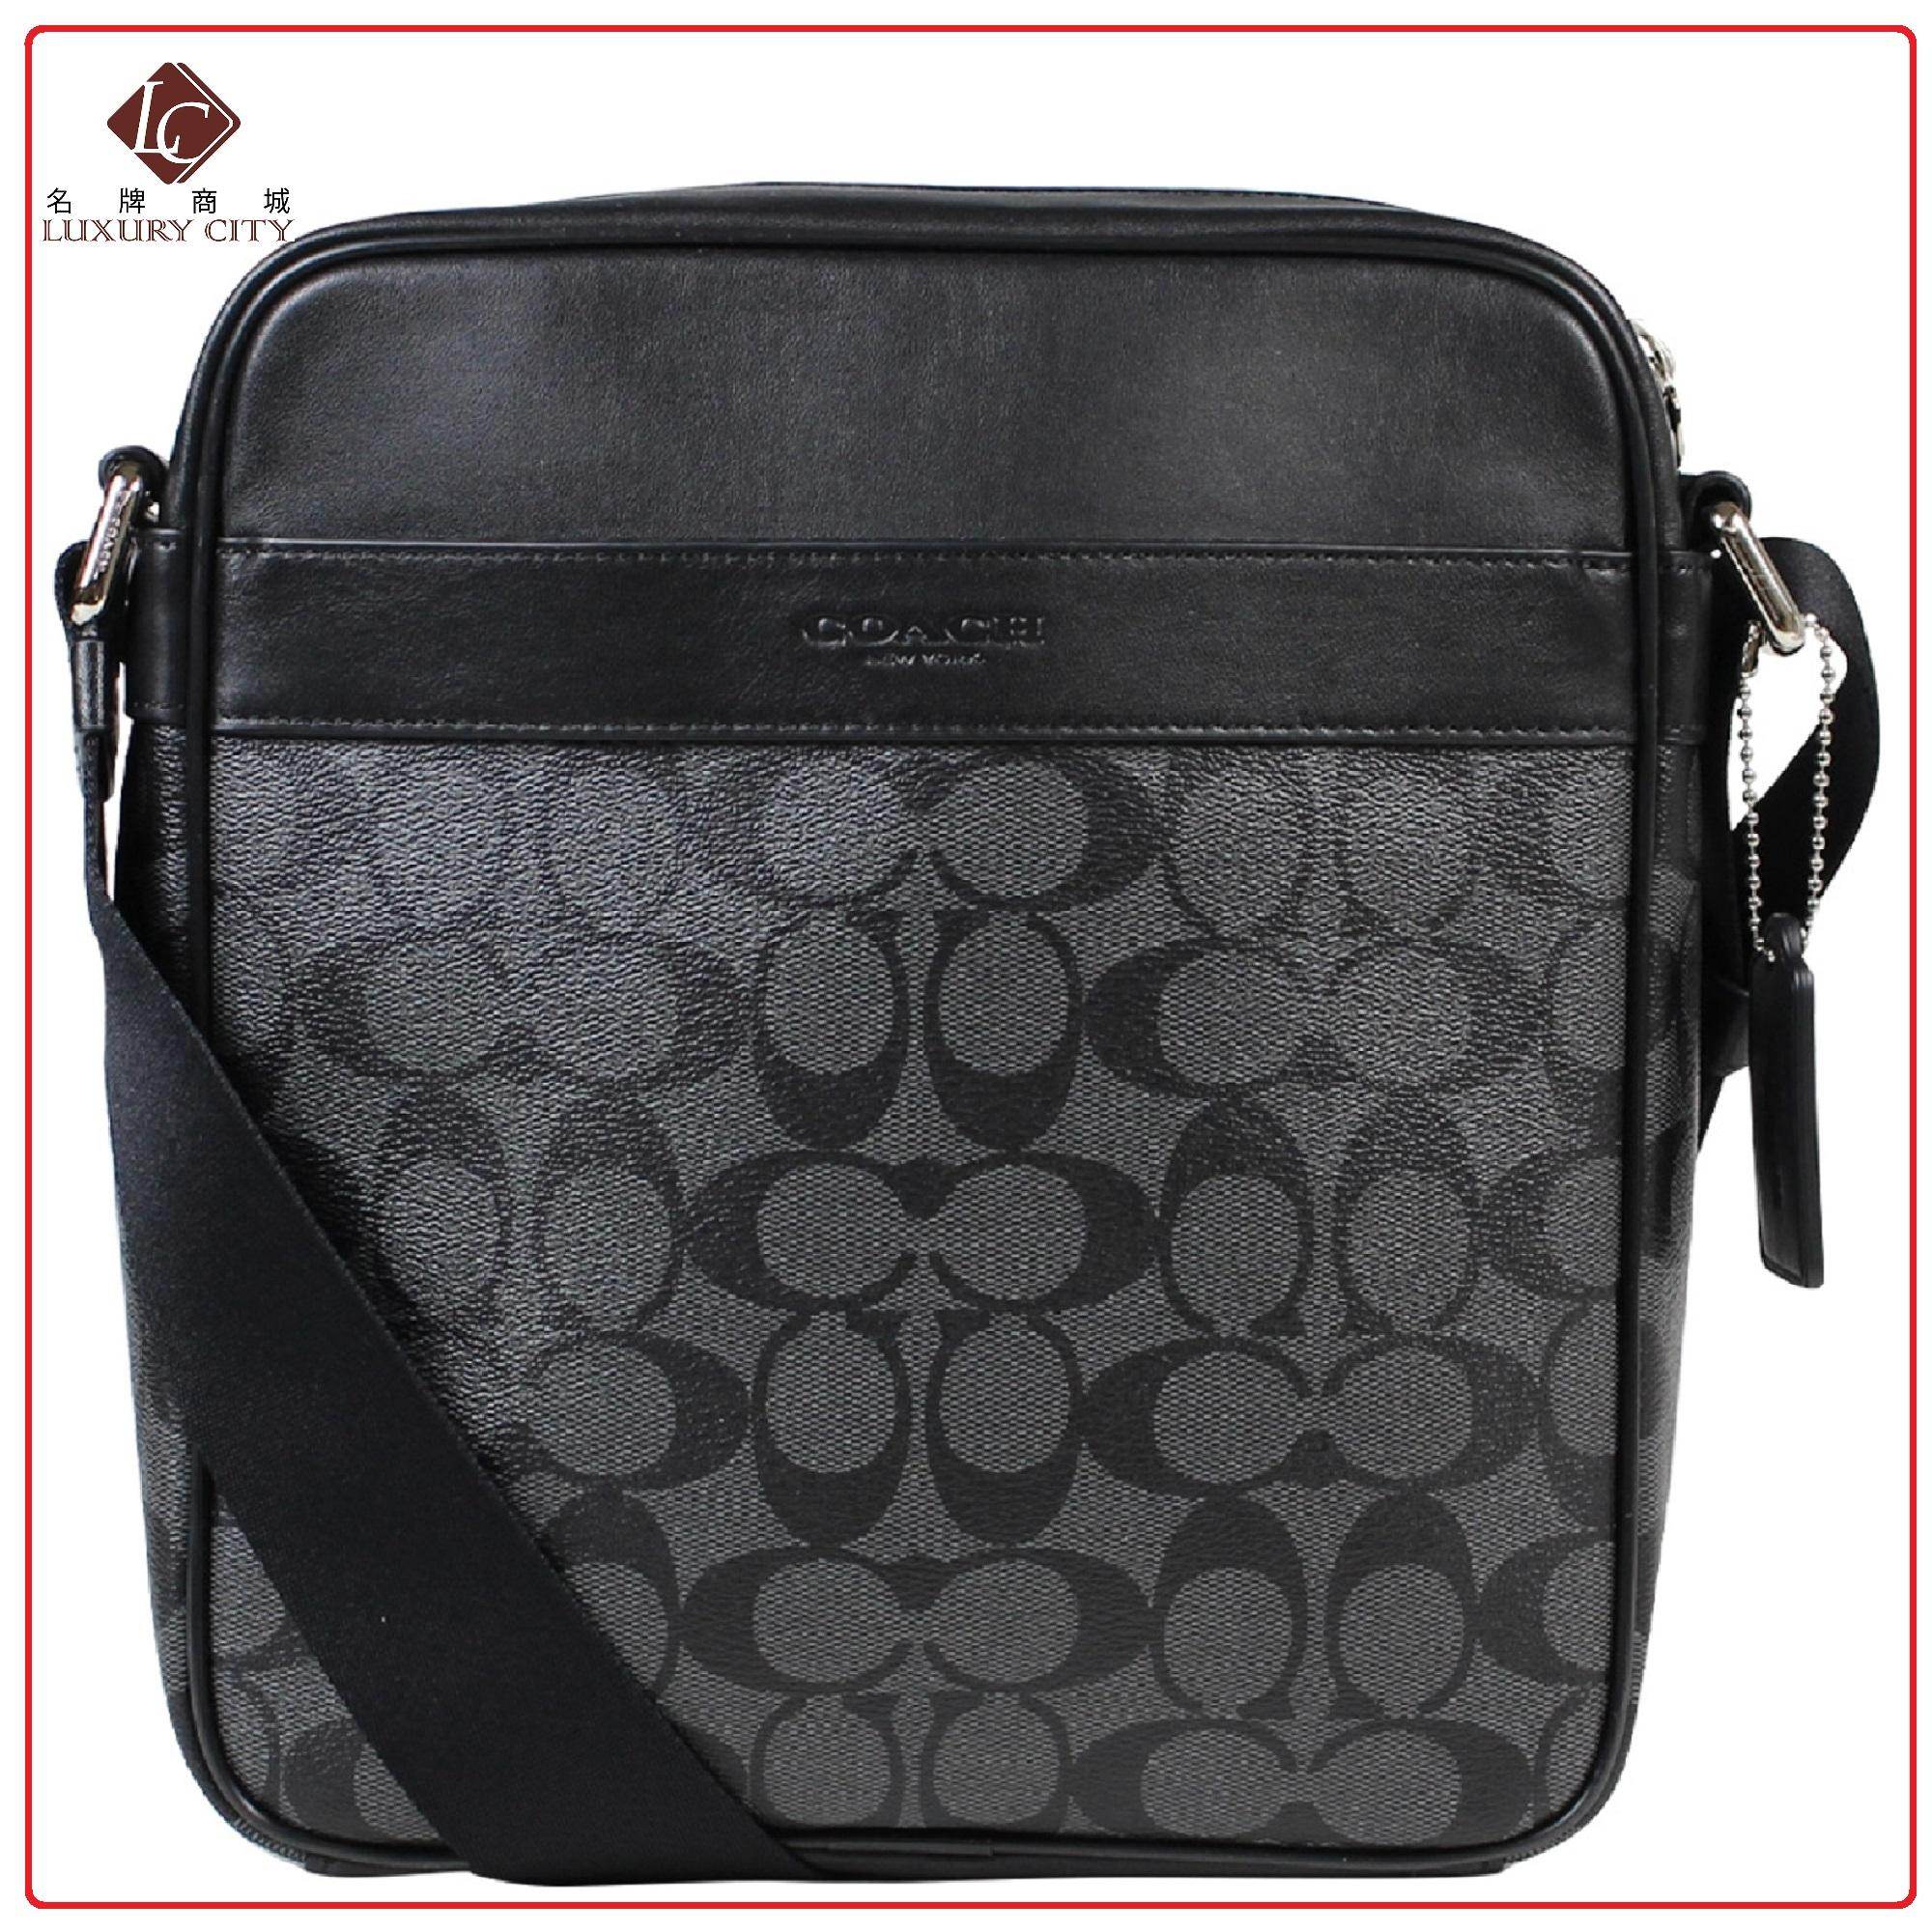 a1e5b58b68d9 Coach Men s Shoulder Inclined Shoulder Bag F54788 (Black)